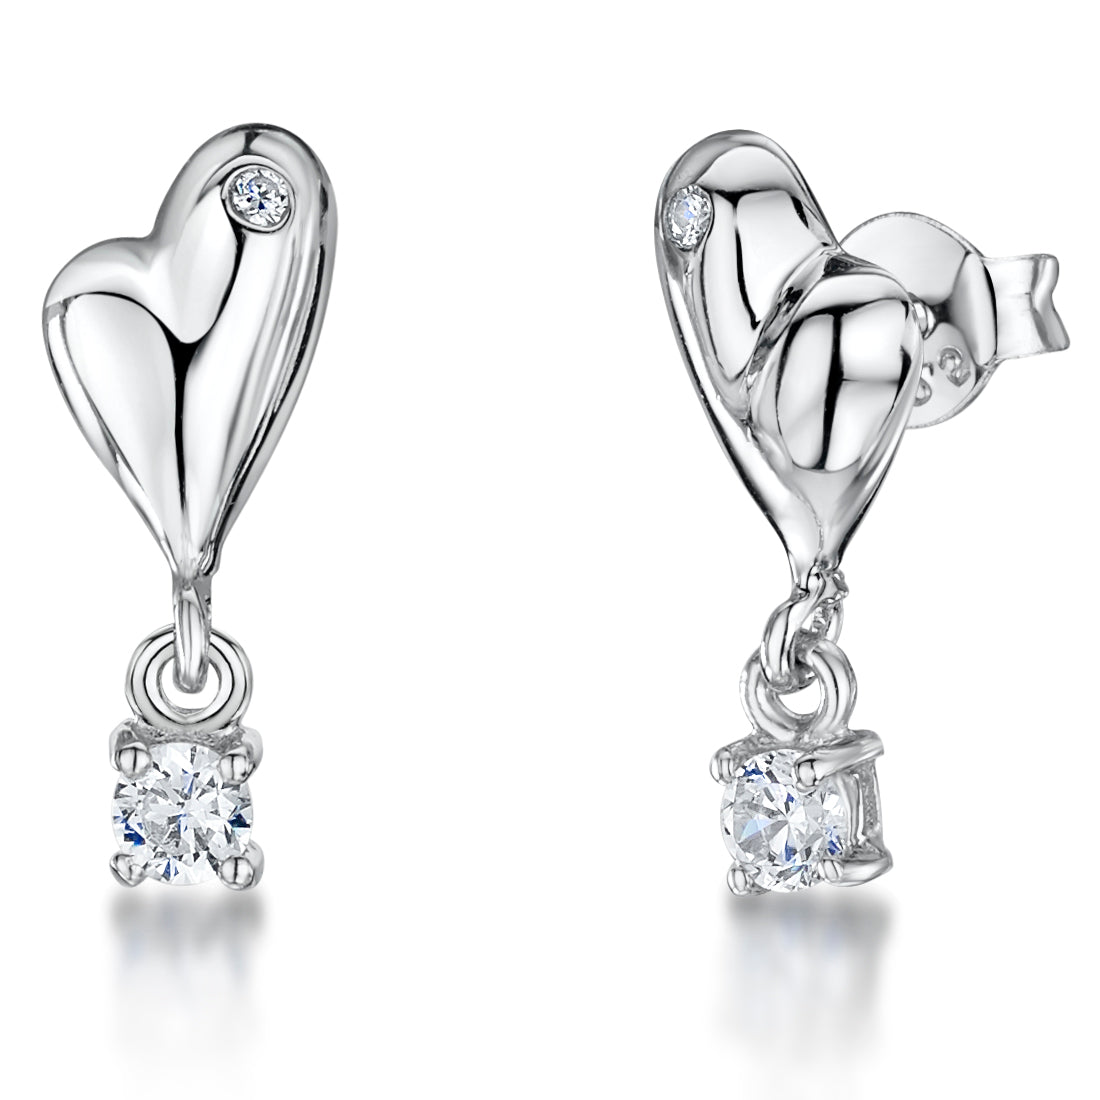 Sterling Silver Quirky Heart Stud Earrings Set With A Single Cubic Zirconia Stone